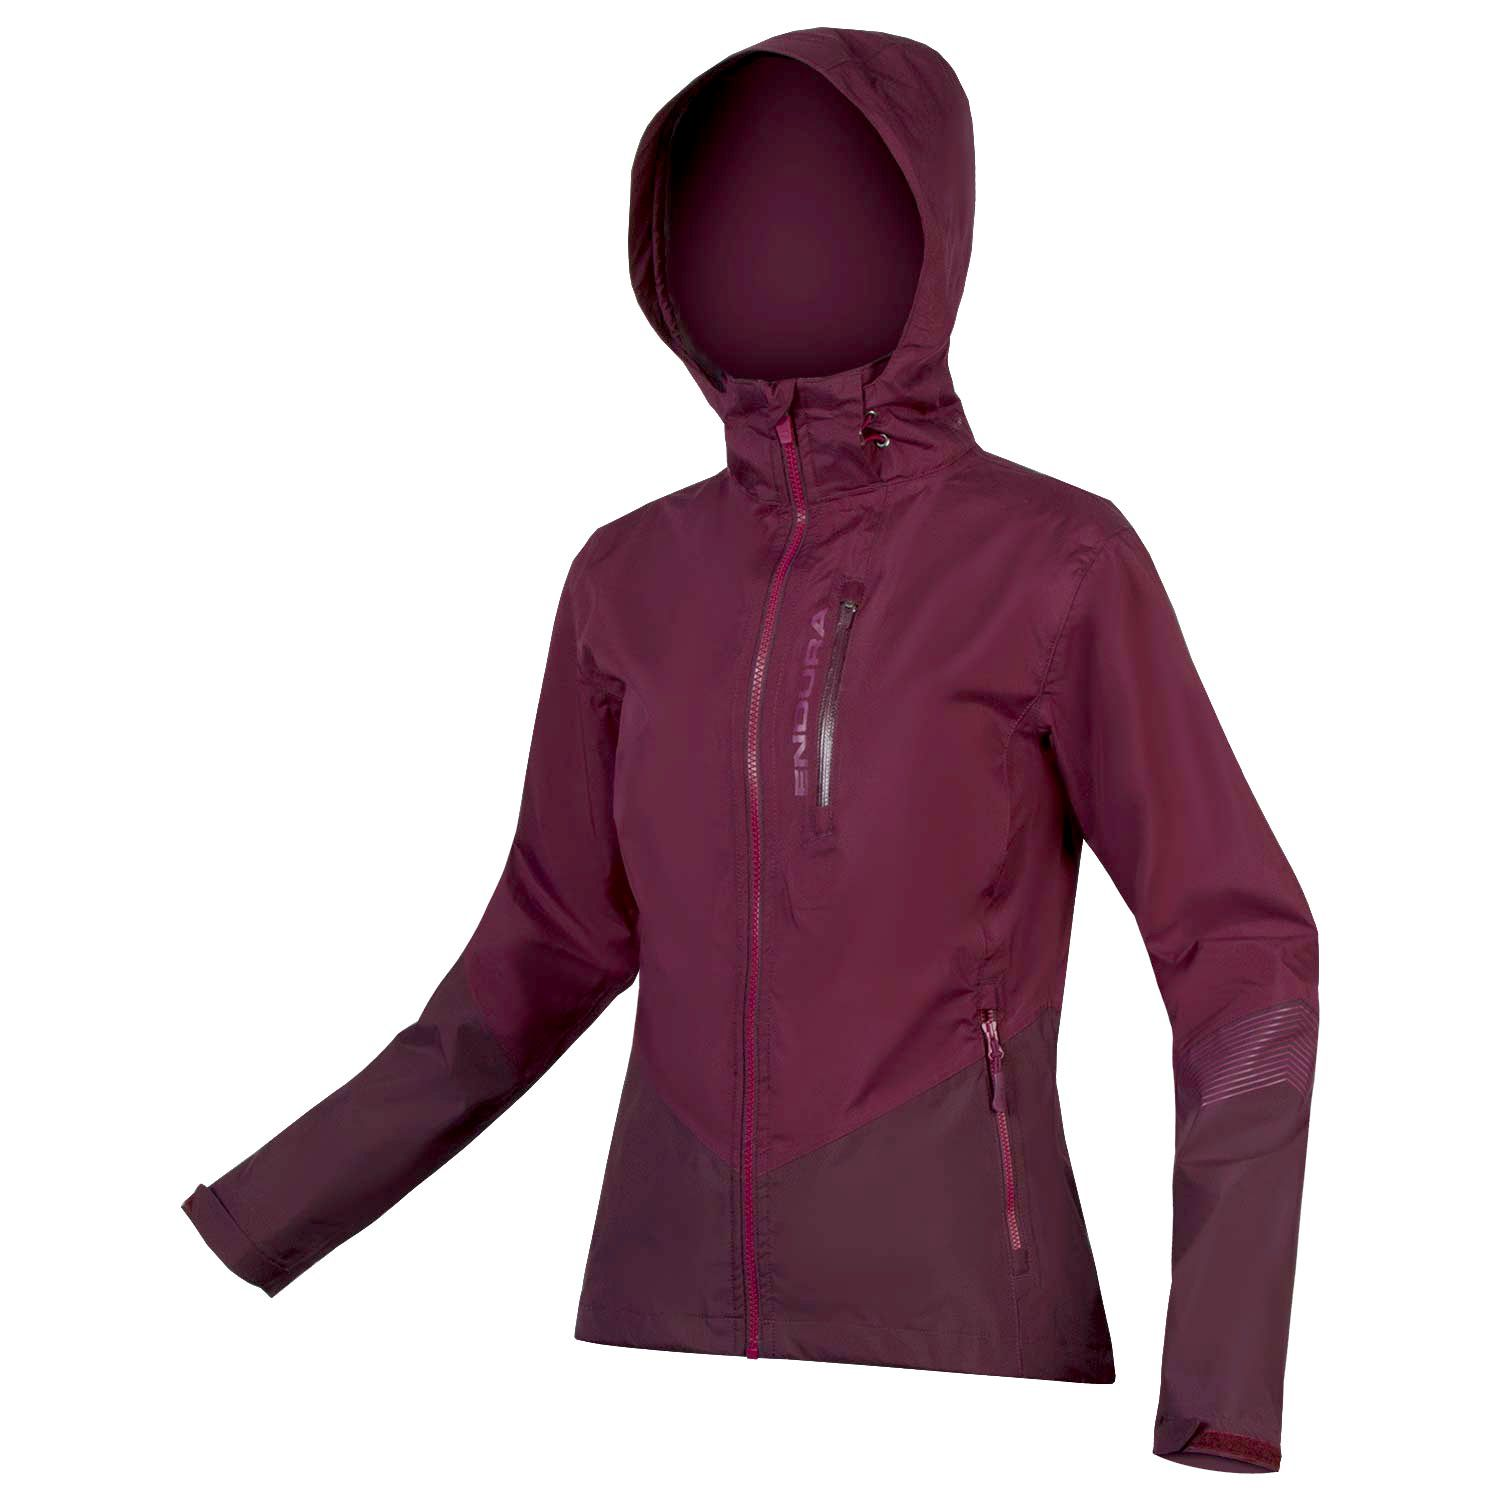 Mujer mora Wms E9100my Singletrack Chaqueta Impermeable Endura Ii R1qWPPvw